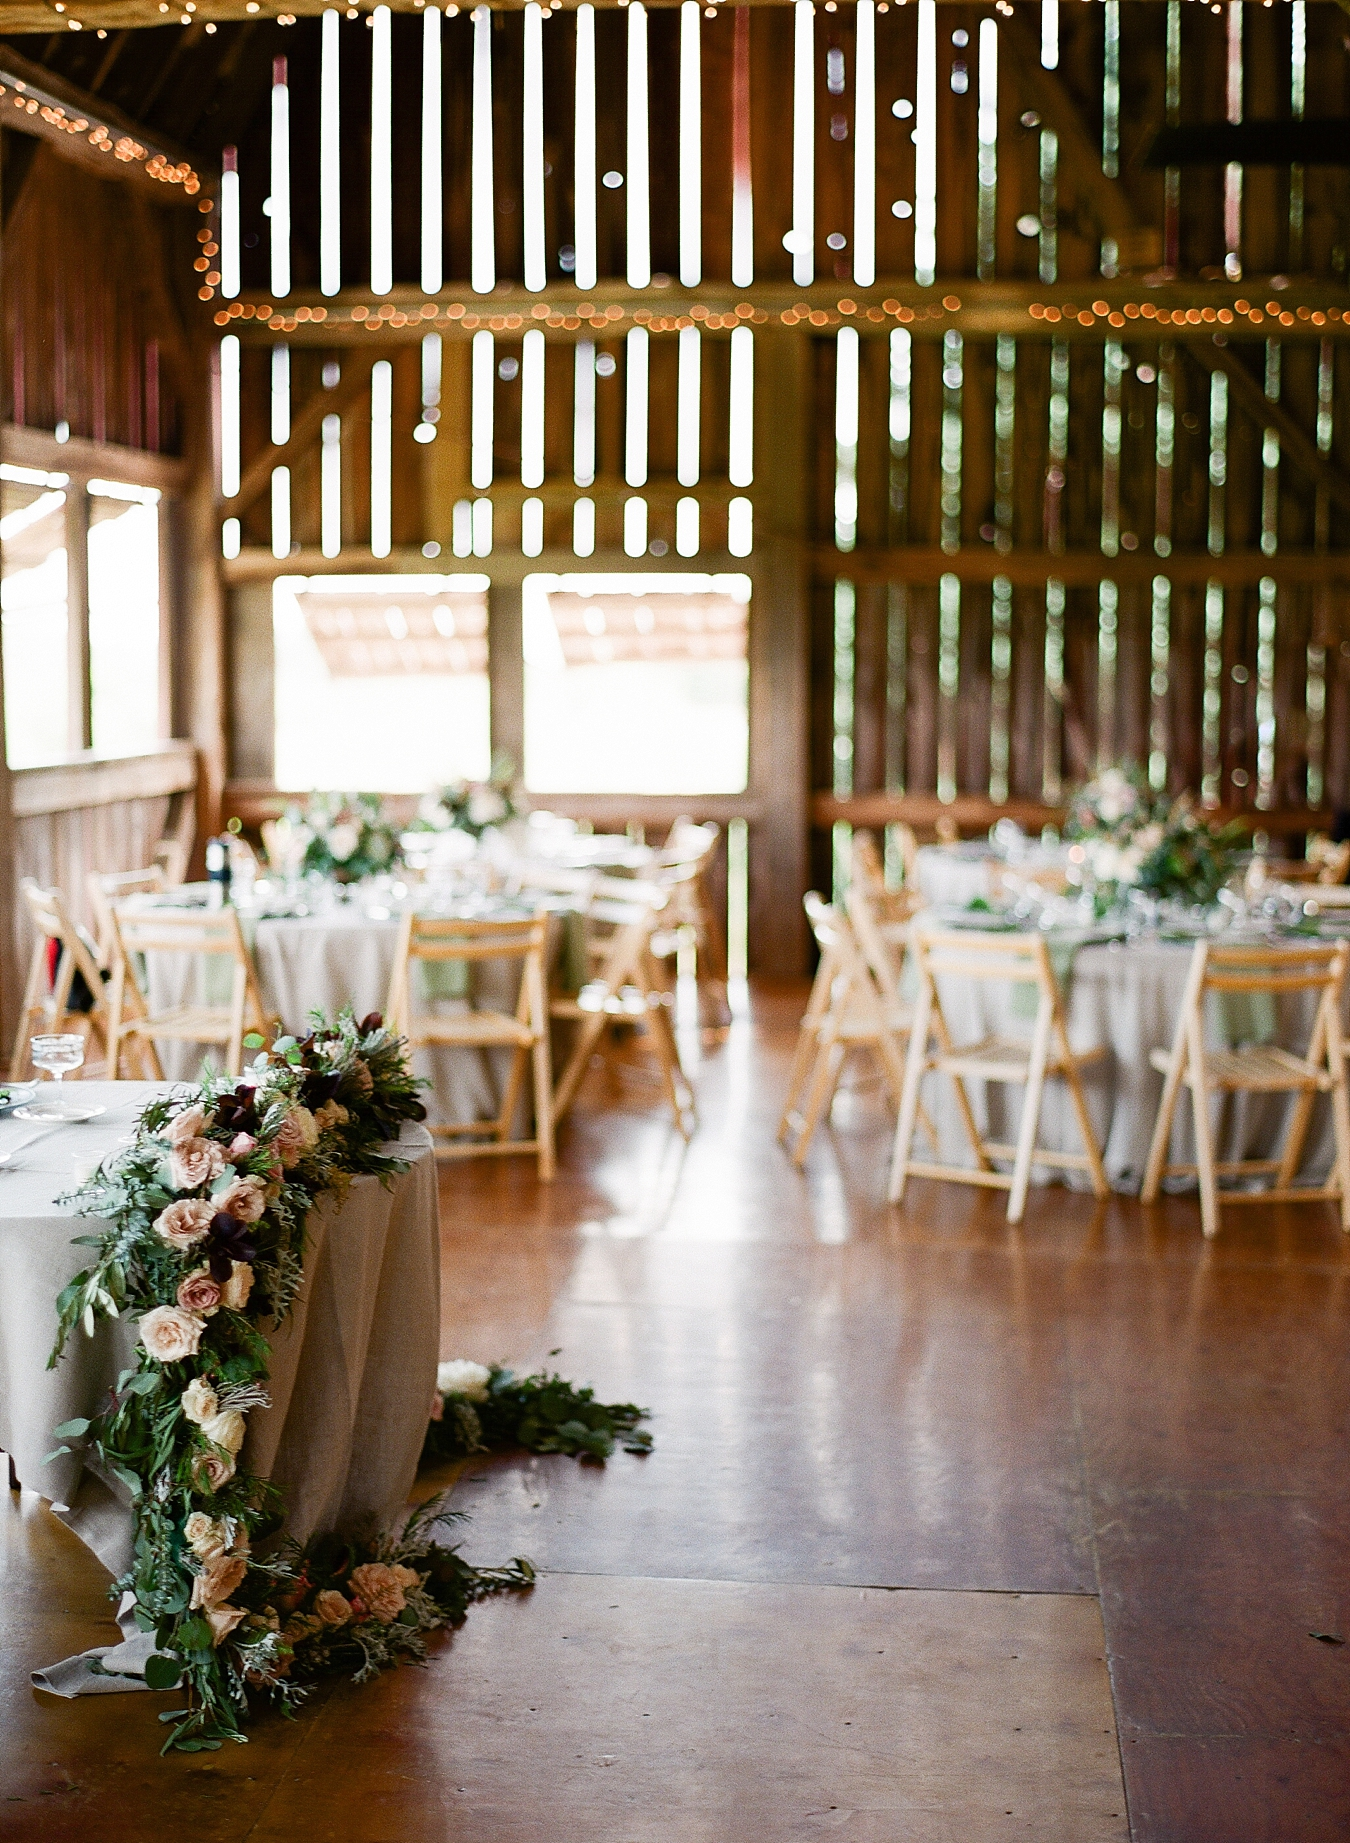 Ciccone Vineyards Barn Wedding | Traverse City Mi Wedding Photography | Cory Weber Photography | Sincerely, Ginger Event Design & Production